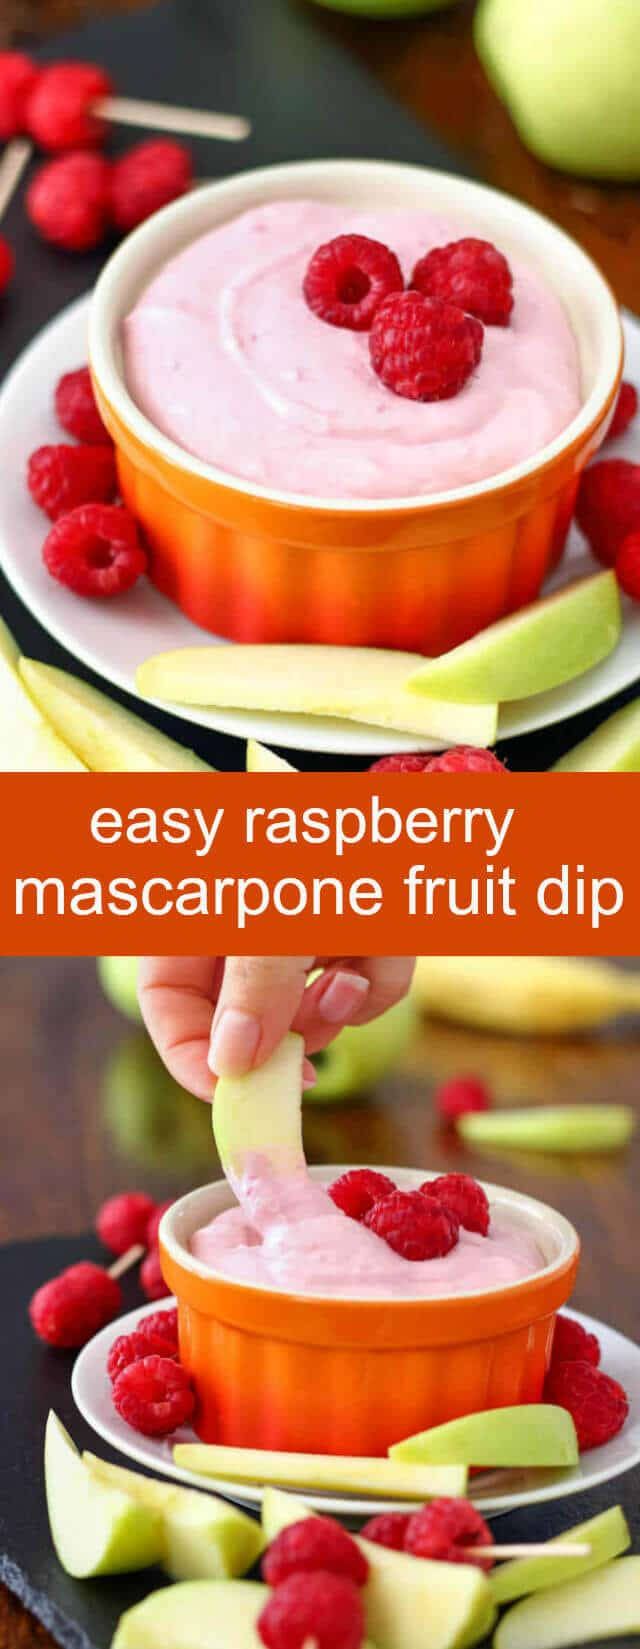 Easy Raspberry Mascarpone Fruit Dip {A Quick Sweet Snack} raspberry/ mascarpone/ dip Easy raspberry mascarpone fruit dip. You only need 4 ingredients; 5 minutes to make this easy raspberry dip! Great for parties, picnics or gatherings!